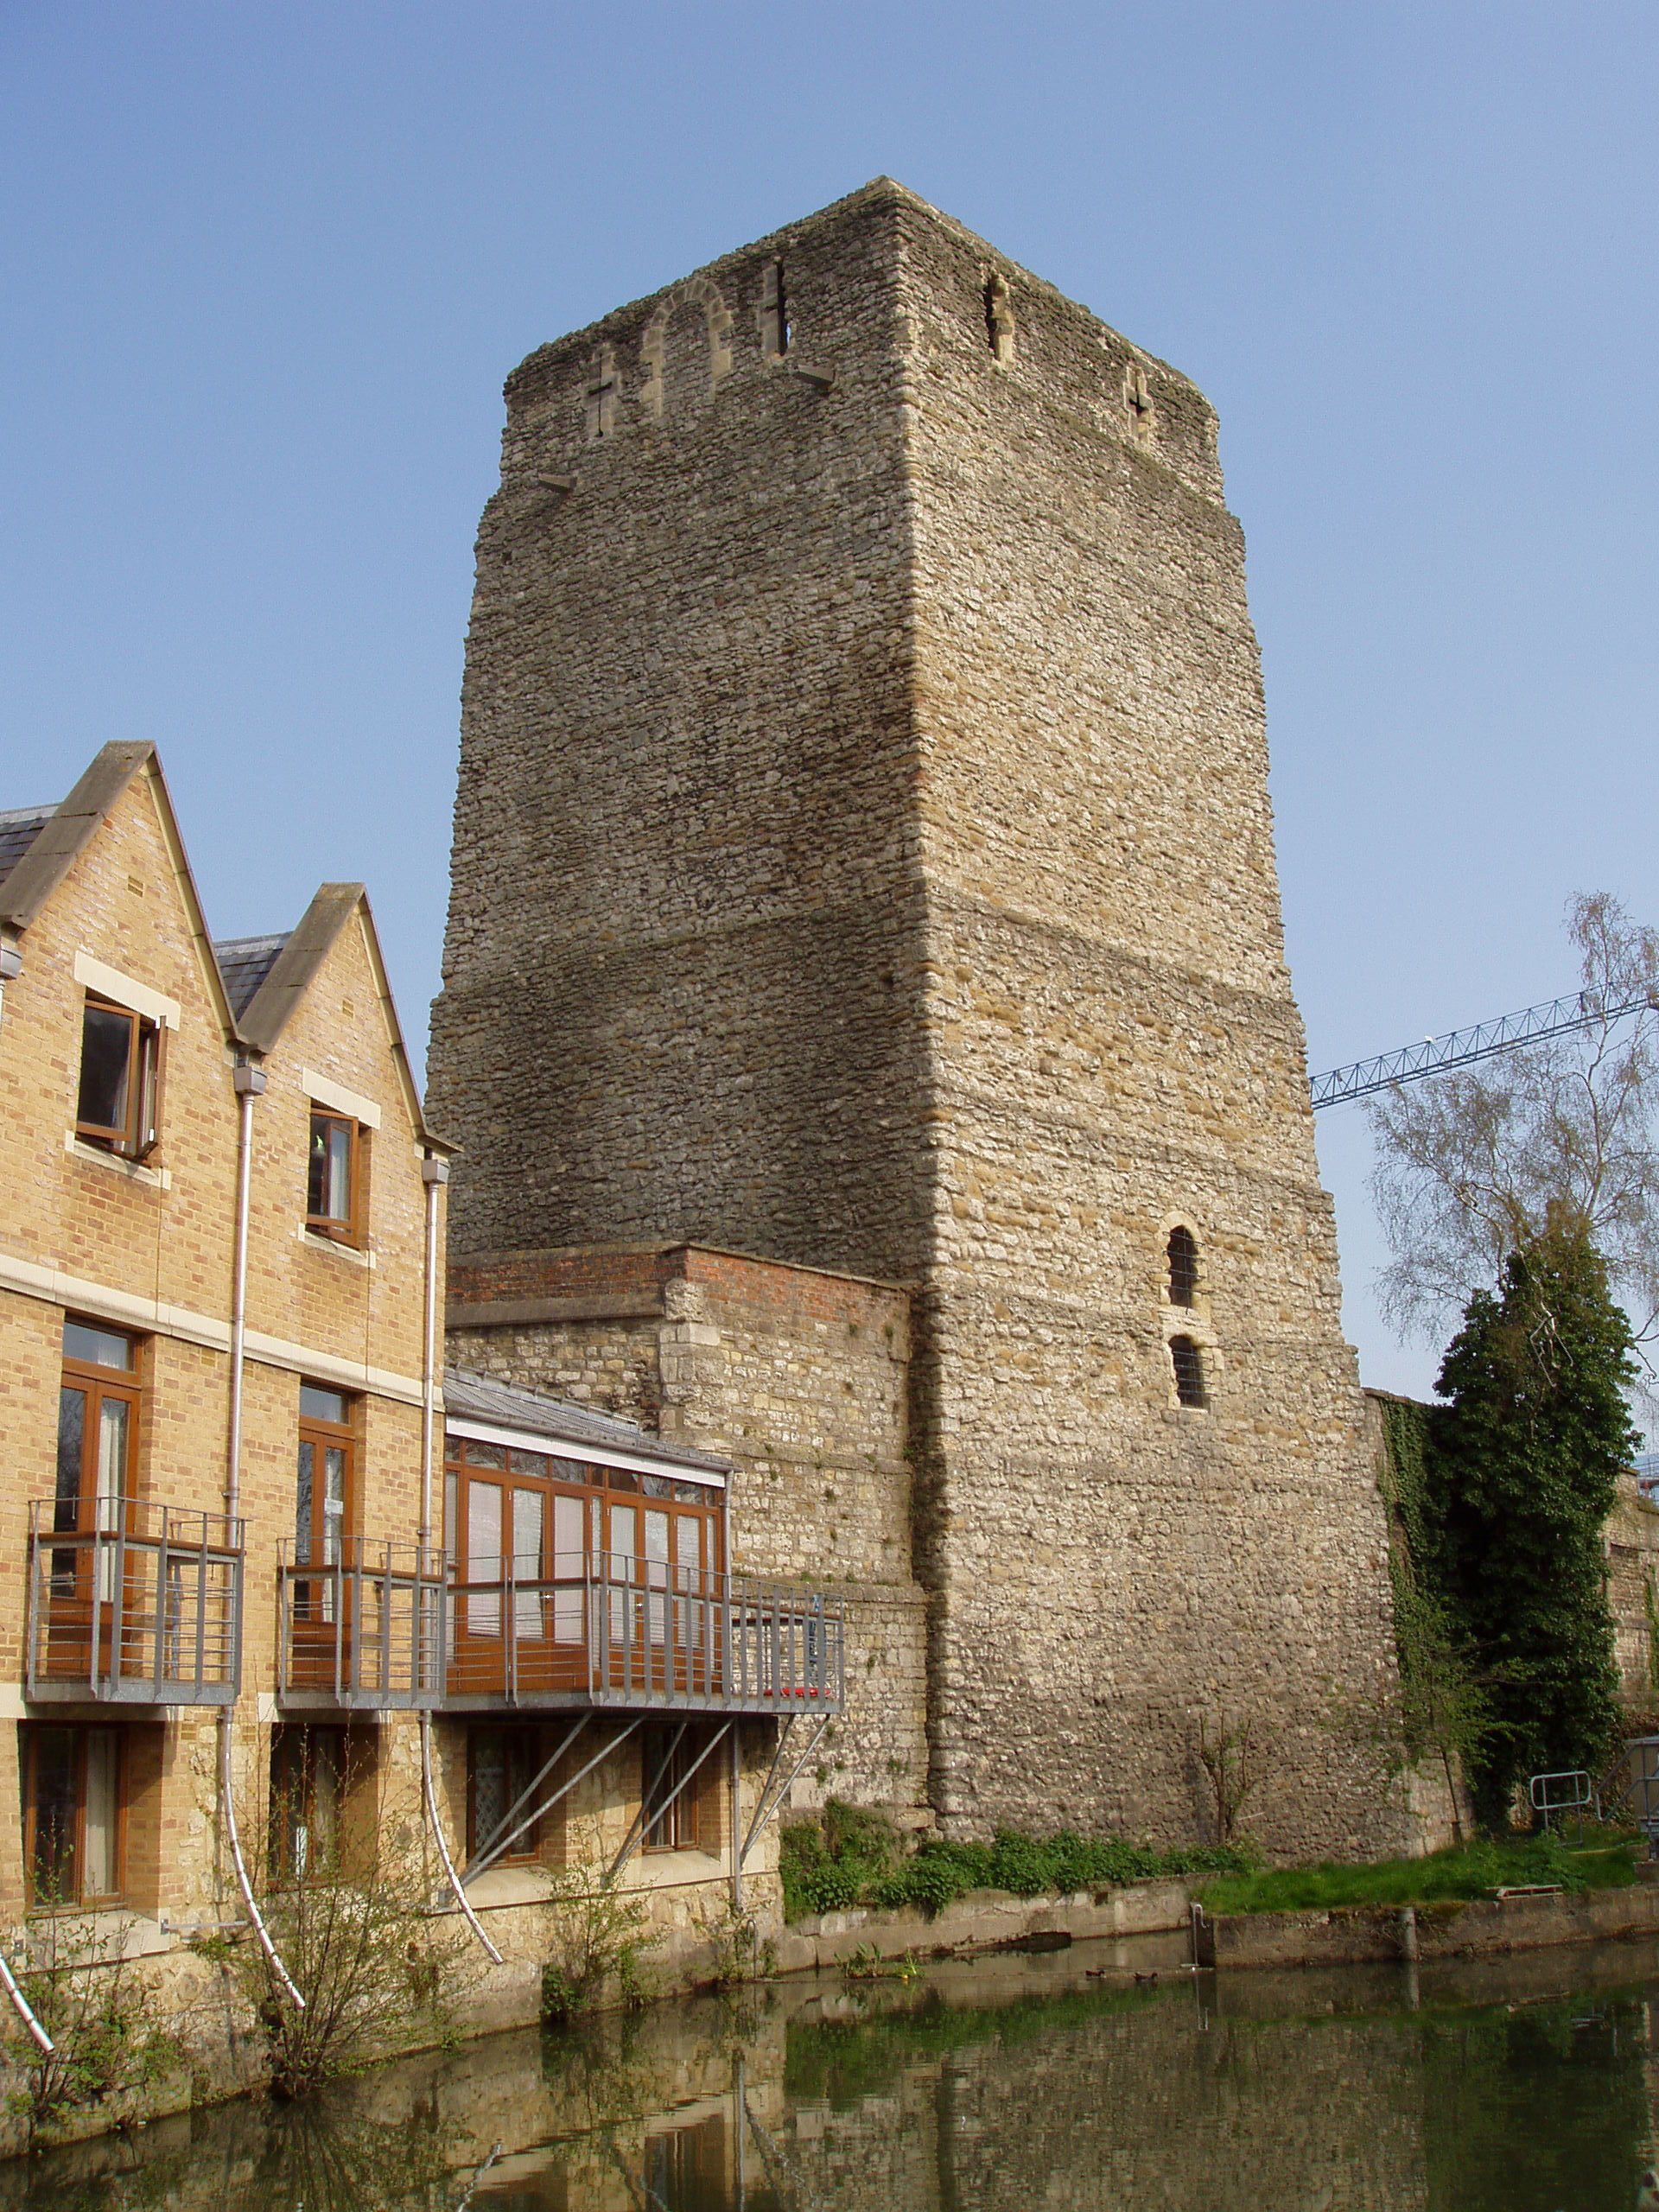 St Peter's College, Oxford. Accommodation block next to Saxon tower